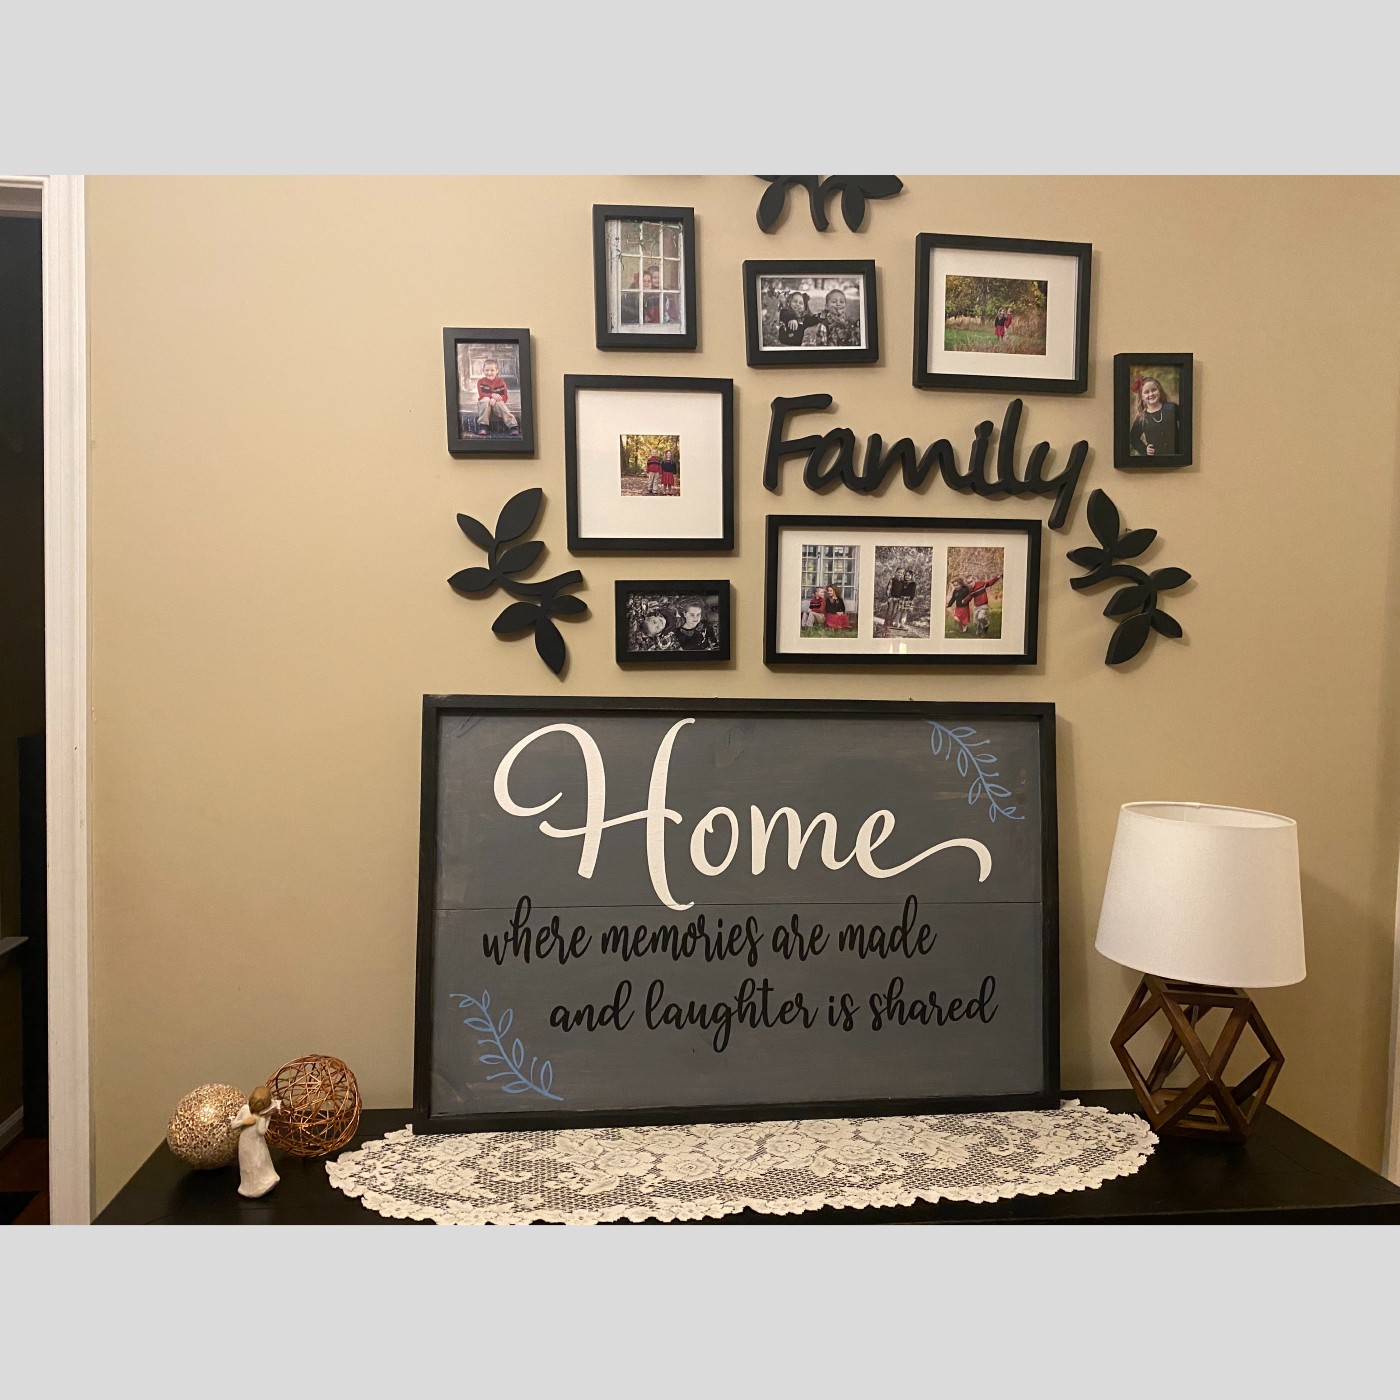 Home Memories an Laughter DIY Wood Sign Bethlehem PA